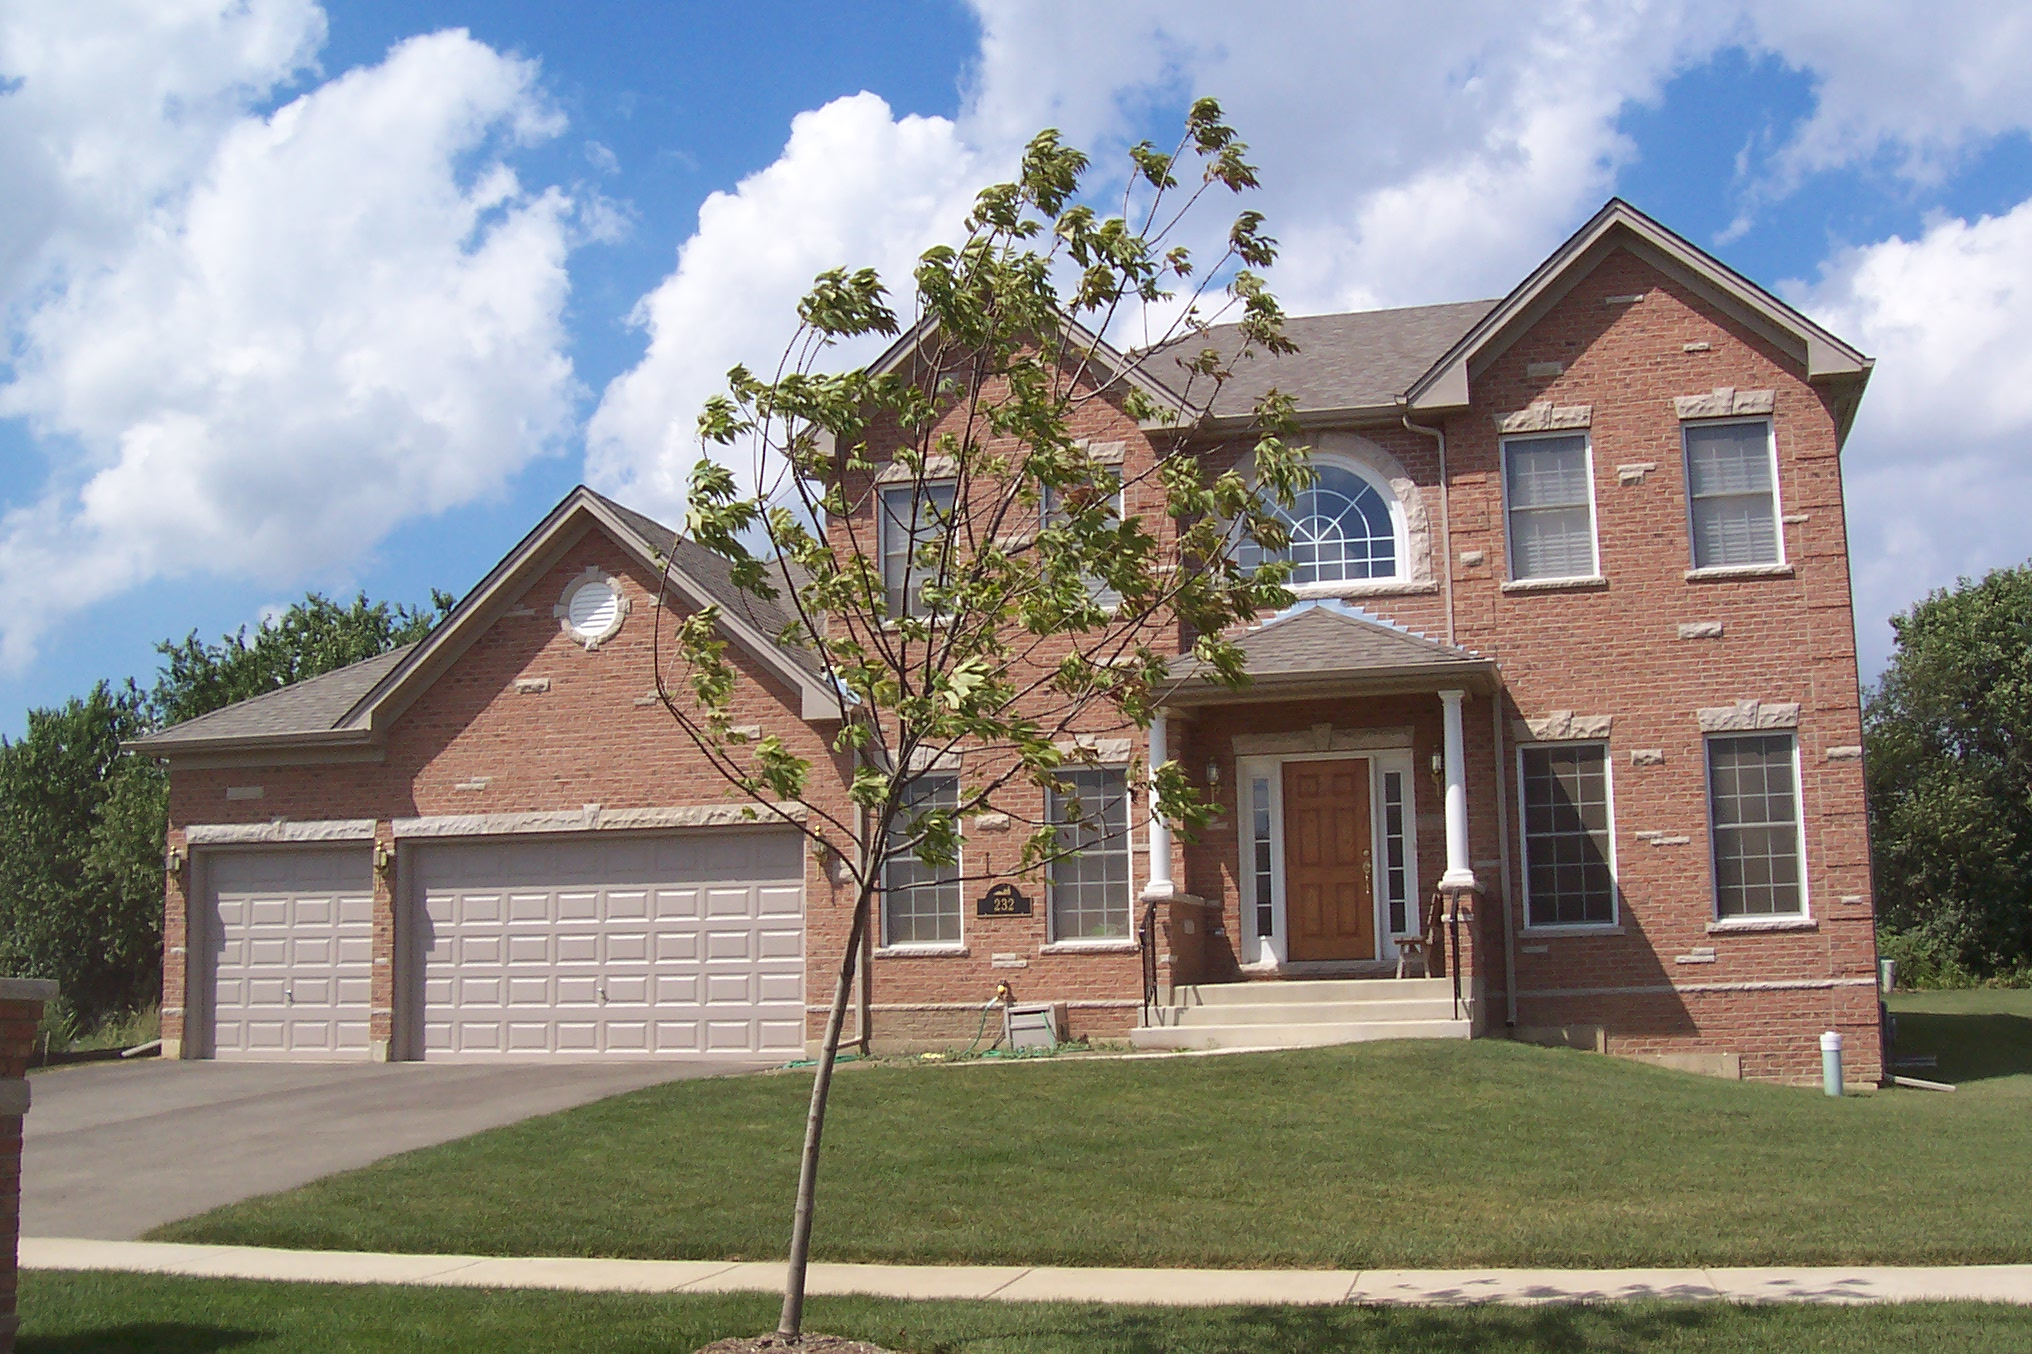 Robinson homes real estate developers and home builders for Southern illinois home builders